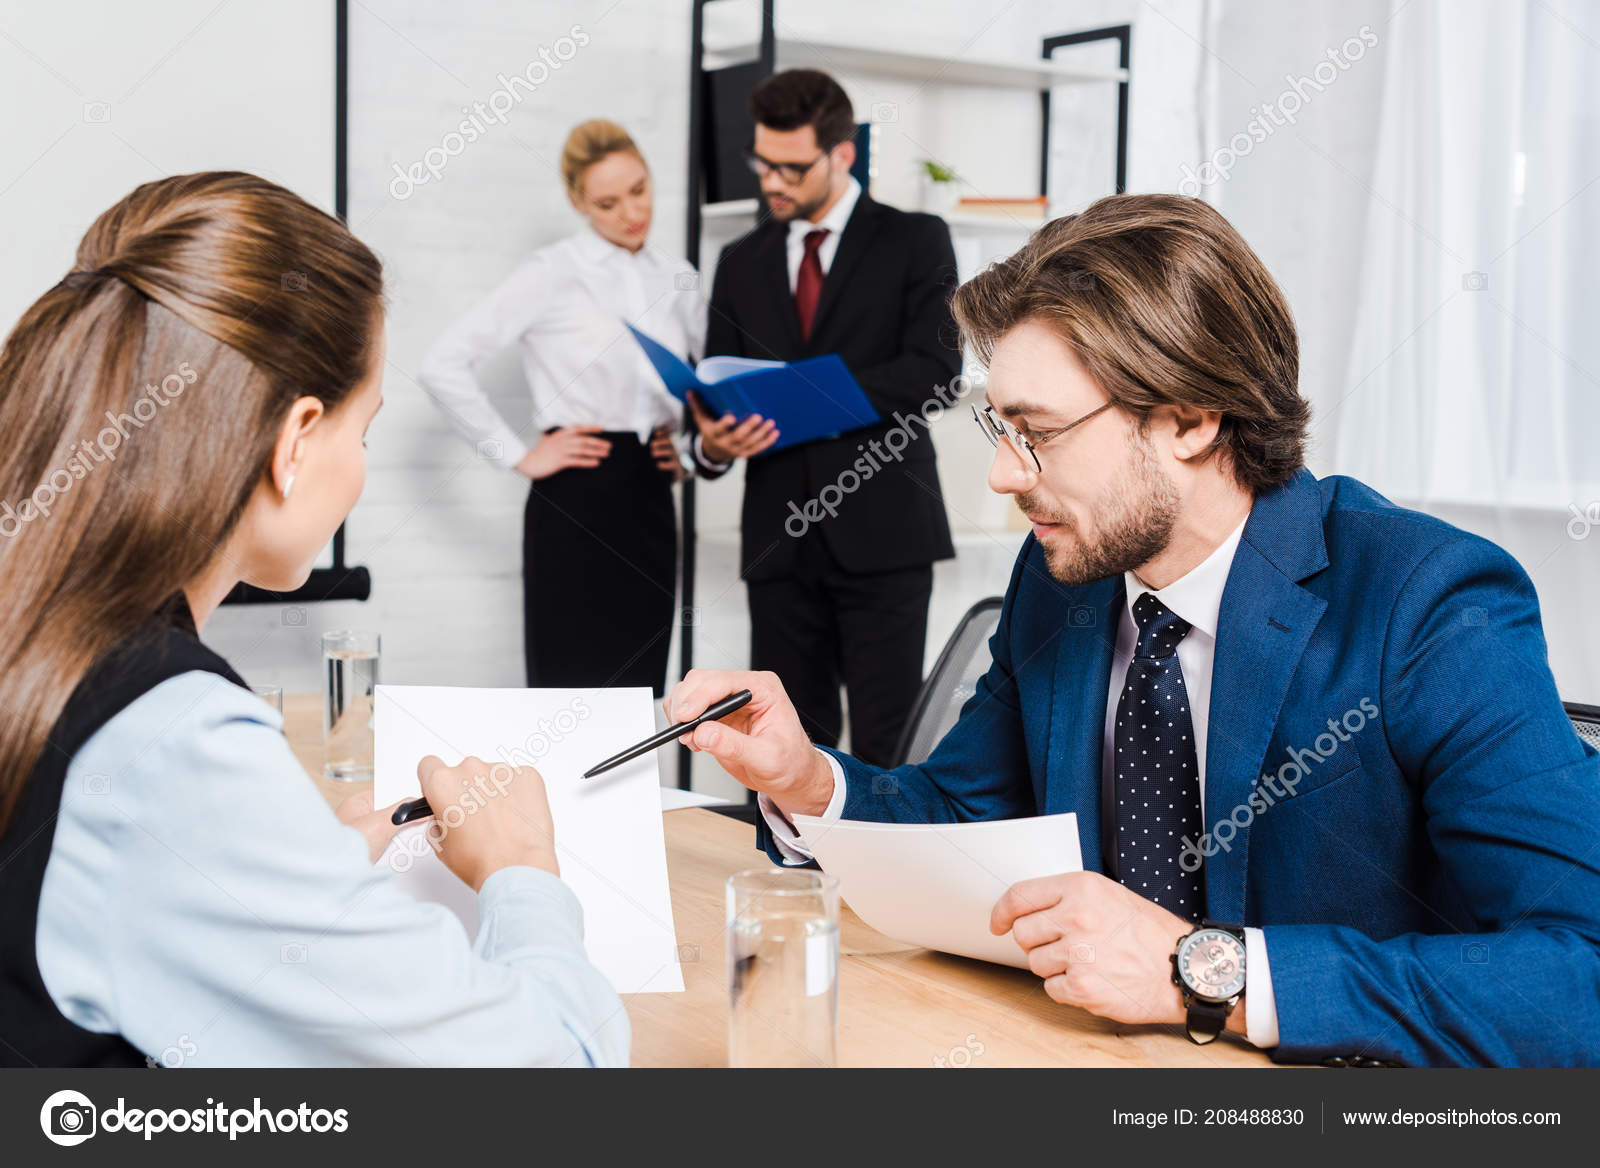 Team Business People Working Together Modern Office Stock Photo